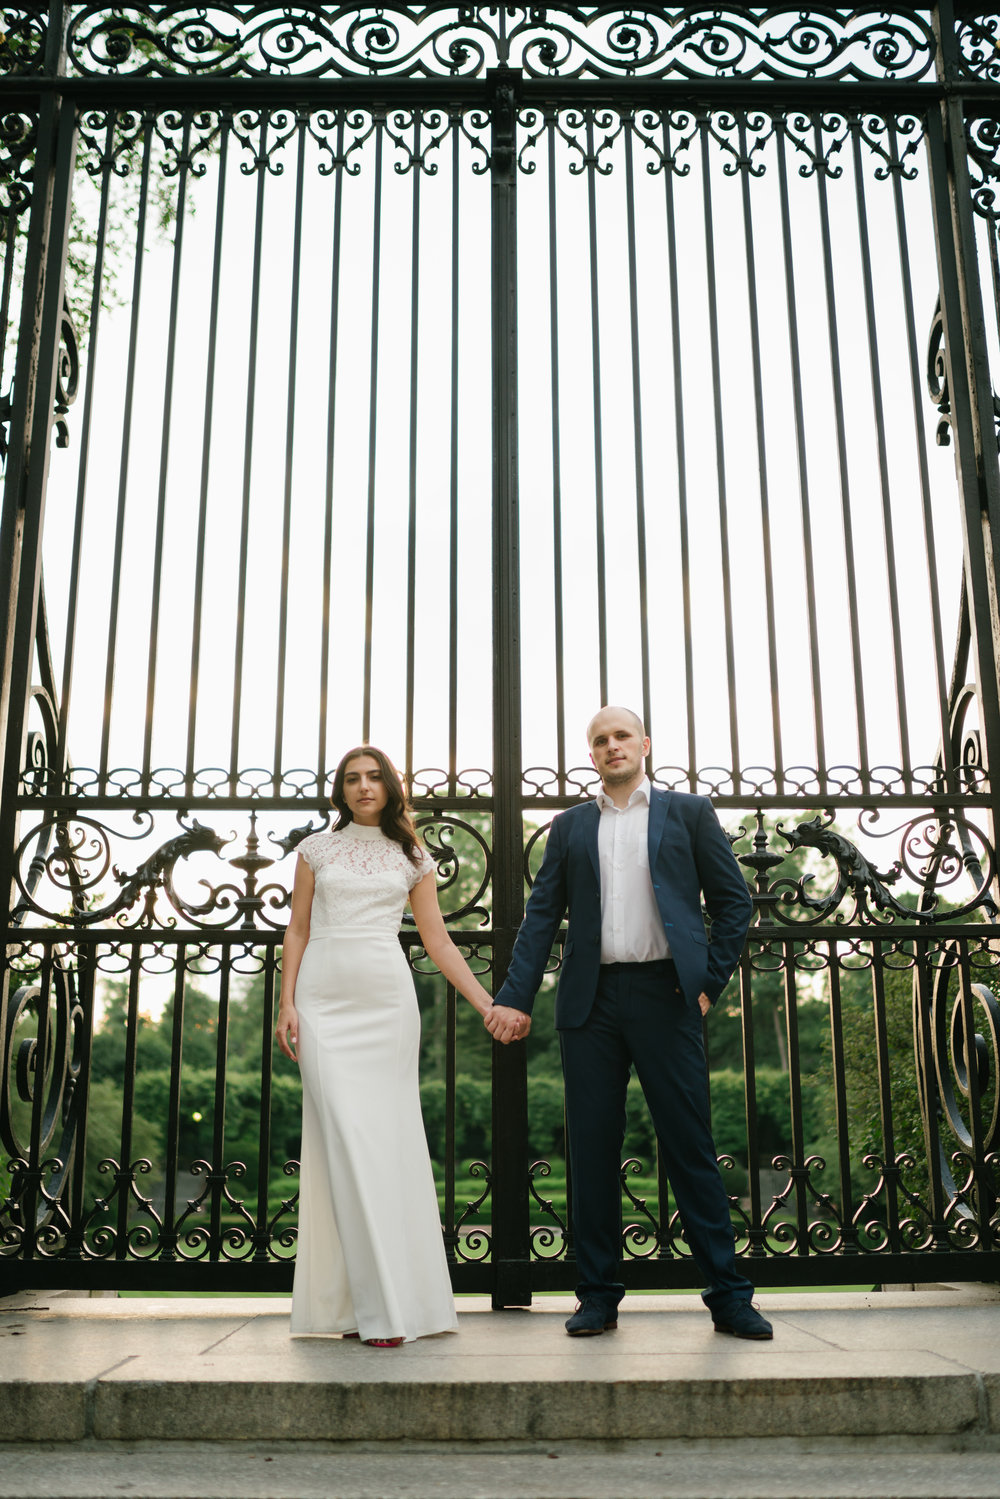 if you ever wondered with eloping in NYC would look like, well its gorgeous.